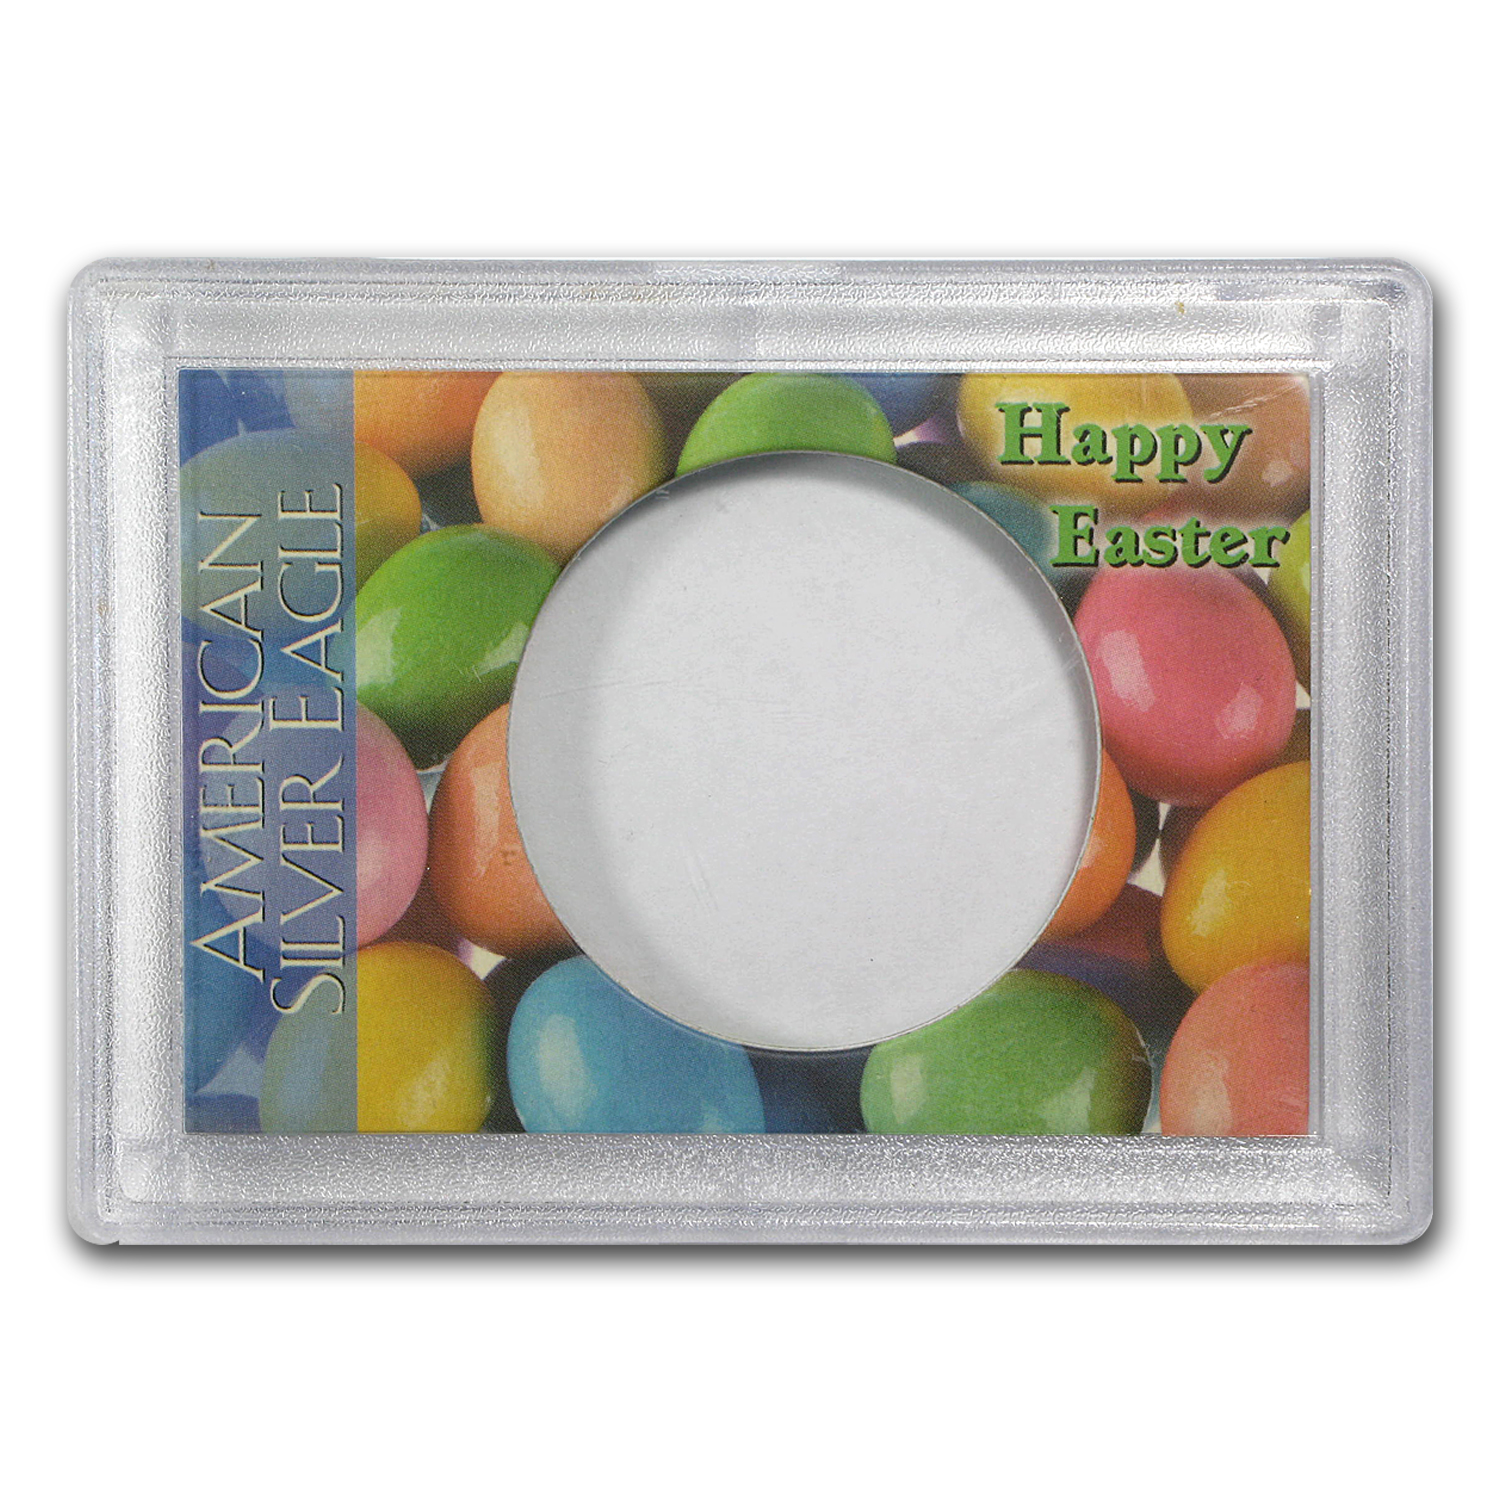 Silver American Eagle Harris Holder (Happy Easter Design)